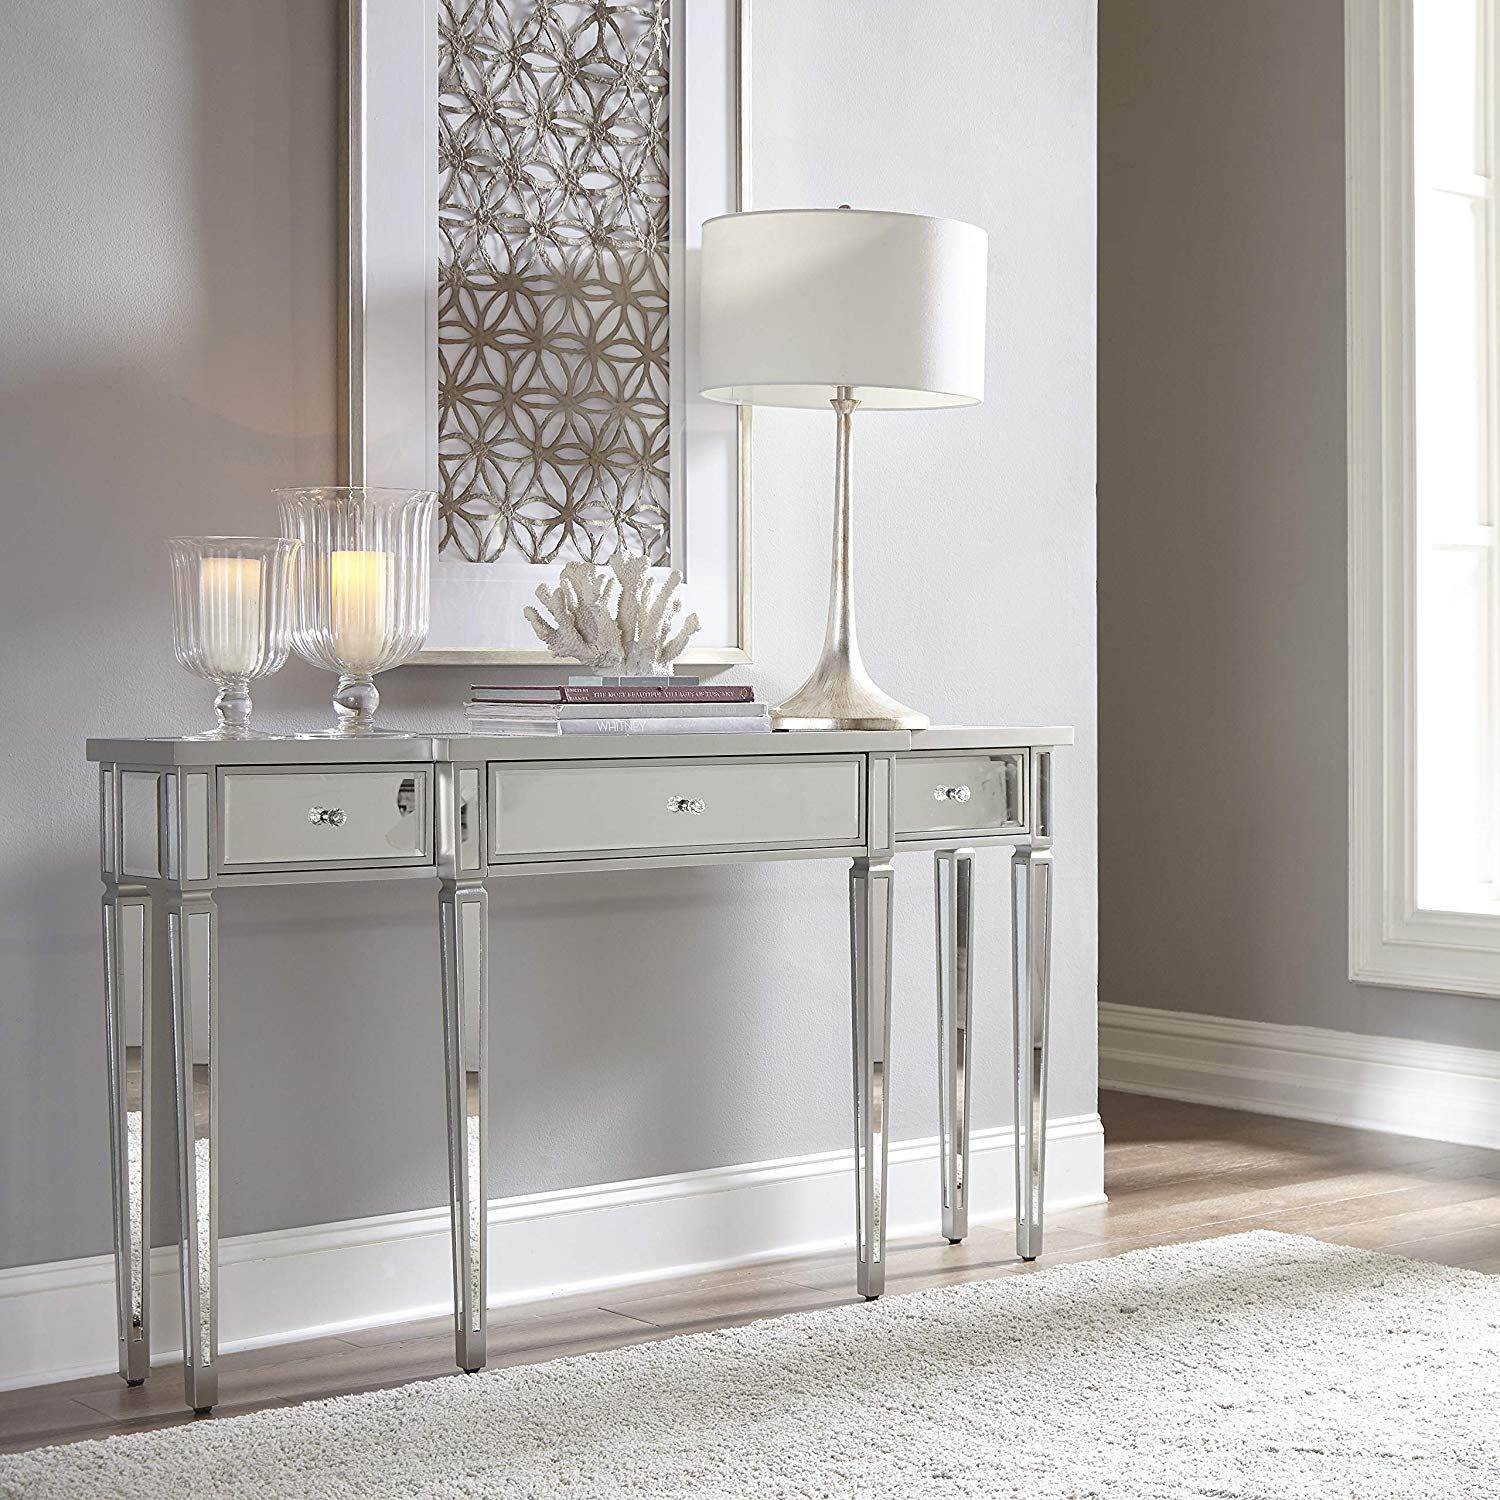 traditional-mirrored-console-table-glamorous-design-with-drawers-and-crystal-handles